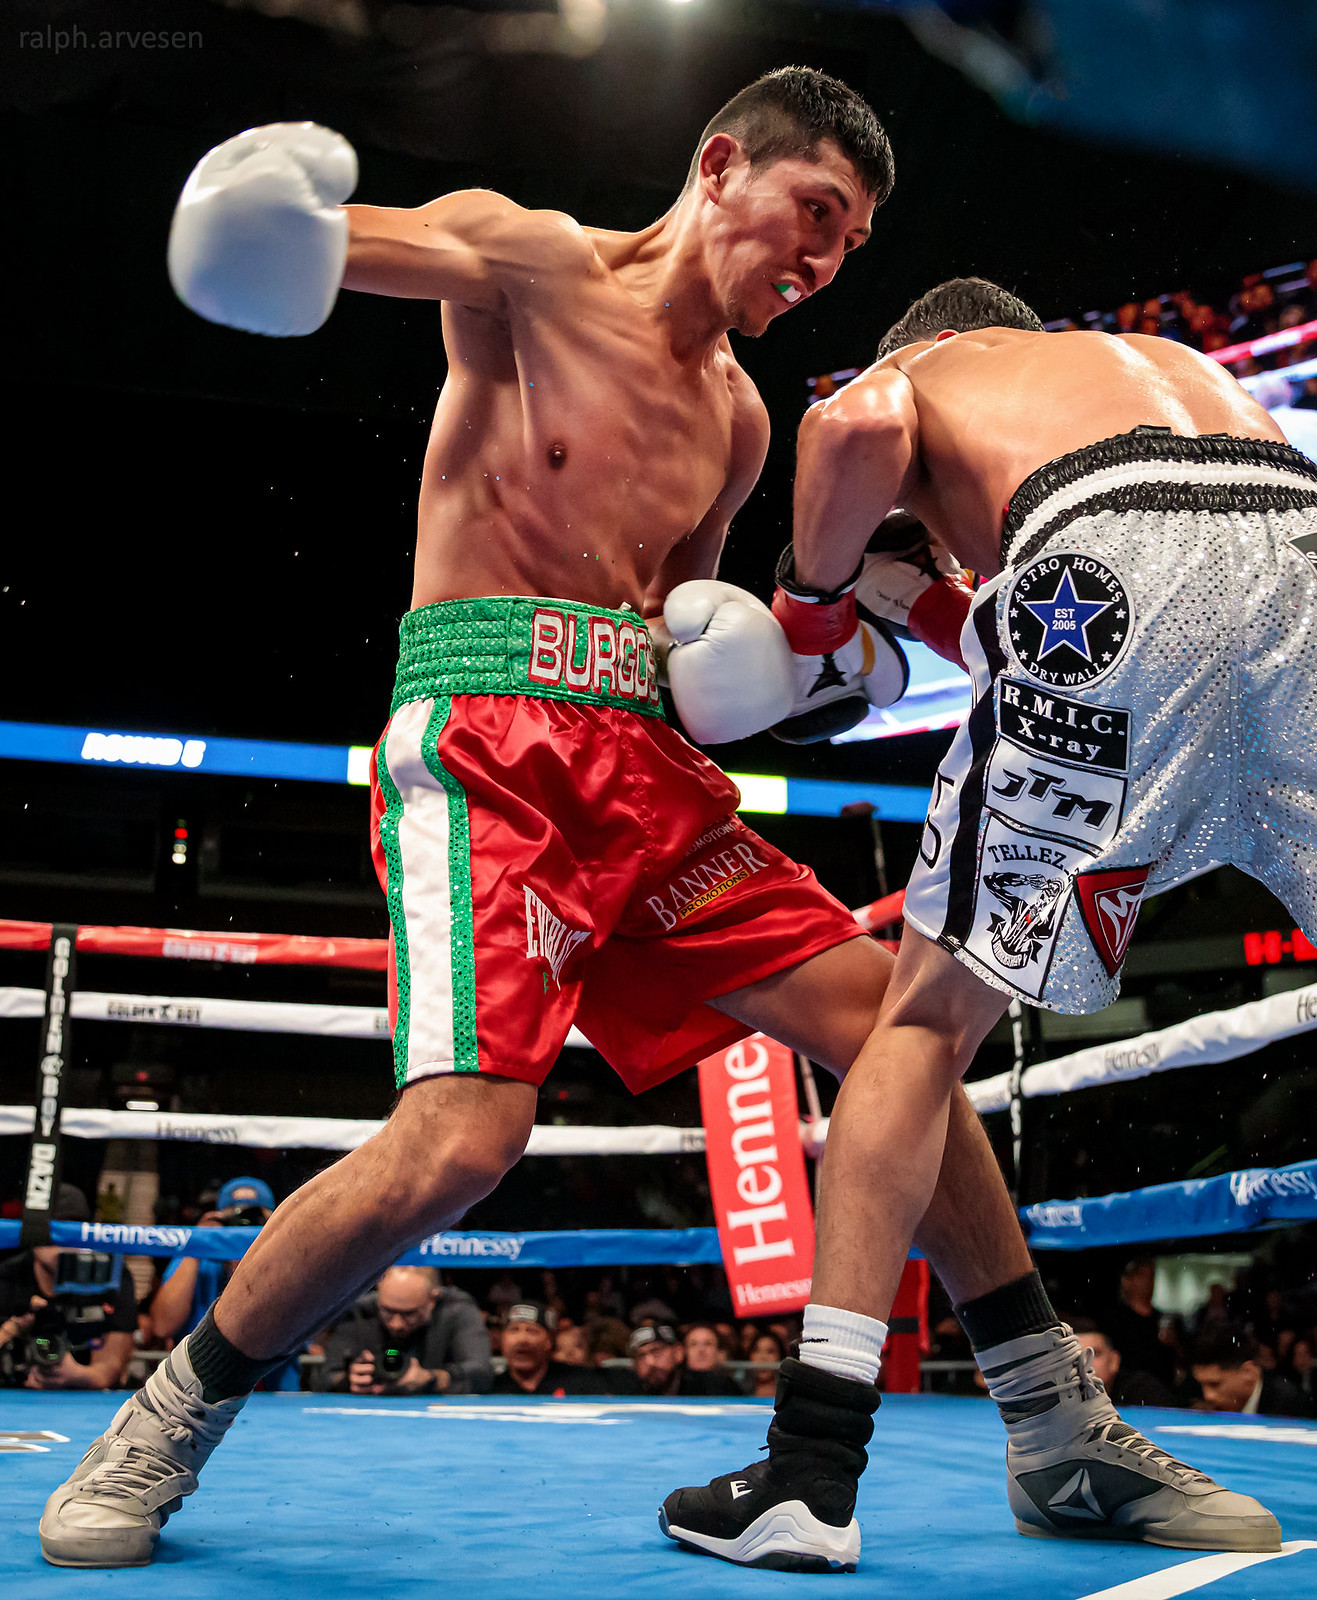 Boxing | Texas Review | Ralph Arvesen